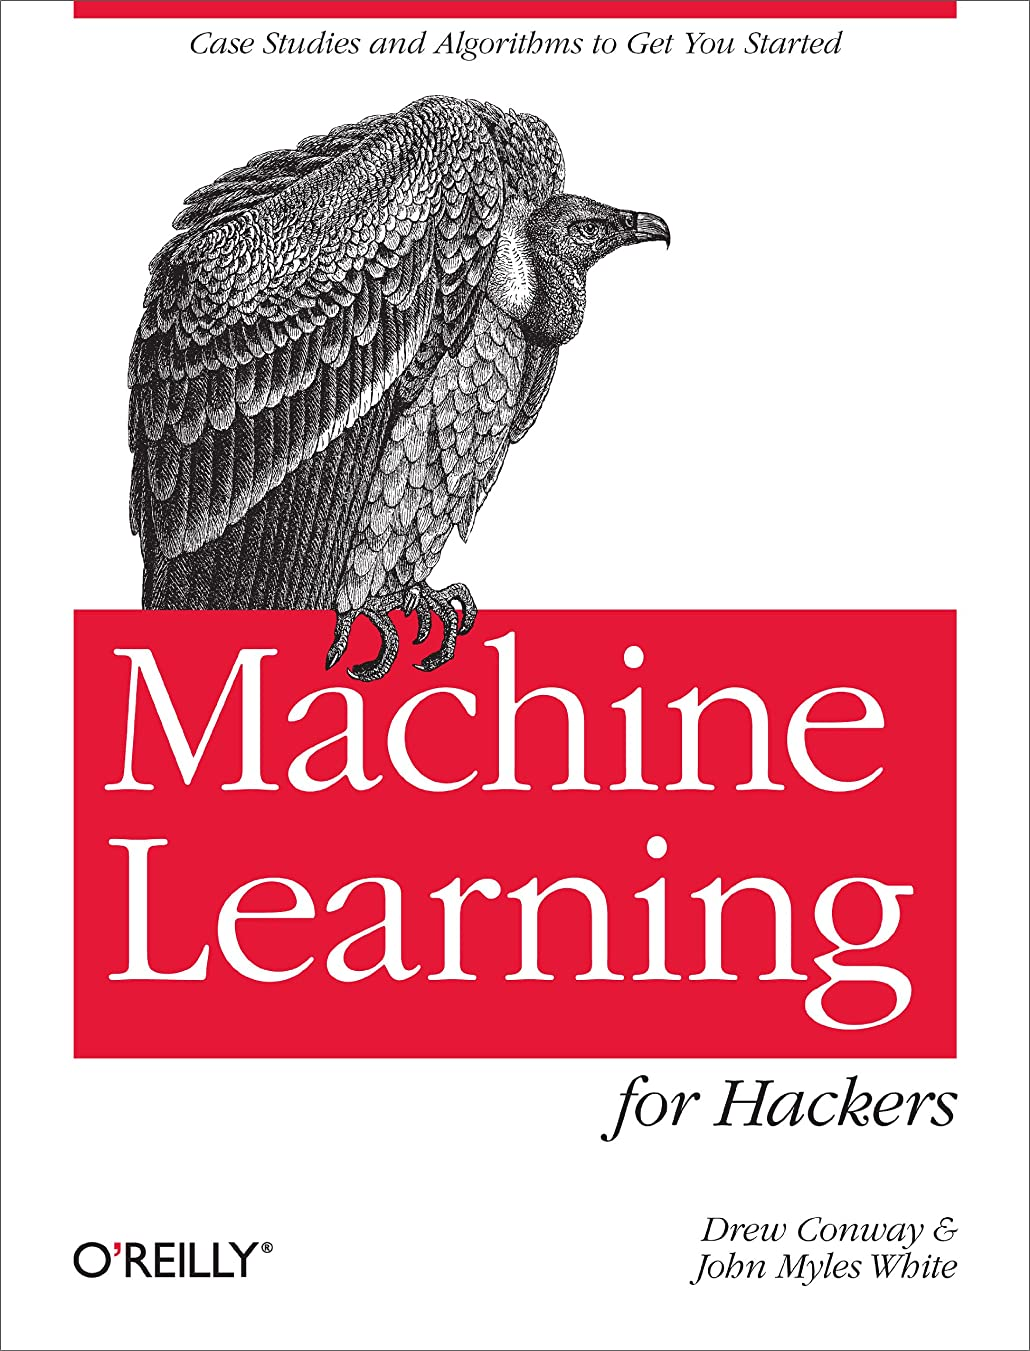 一流レビュー人間Machine Learning for Hackers: Case Studies and Algorithms to Get You Started (English Edition)